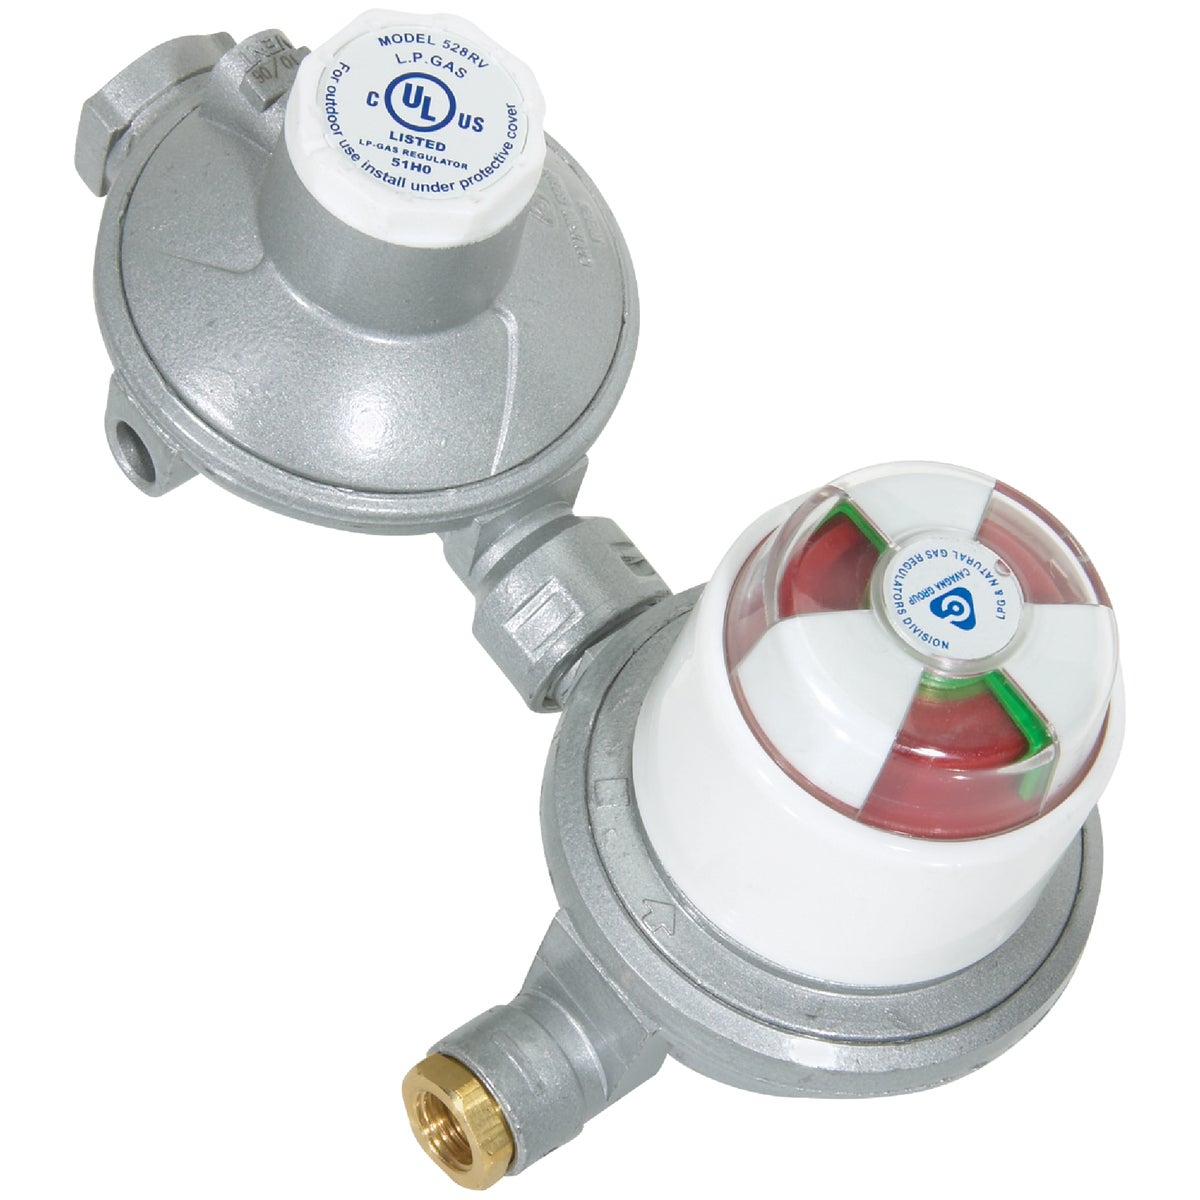 LP GAS REGULATOR - F273766 by Mr Heater Corp